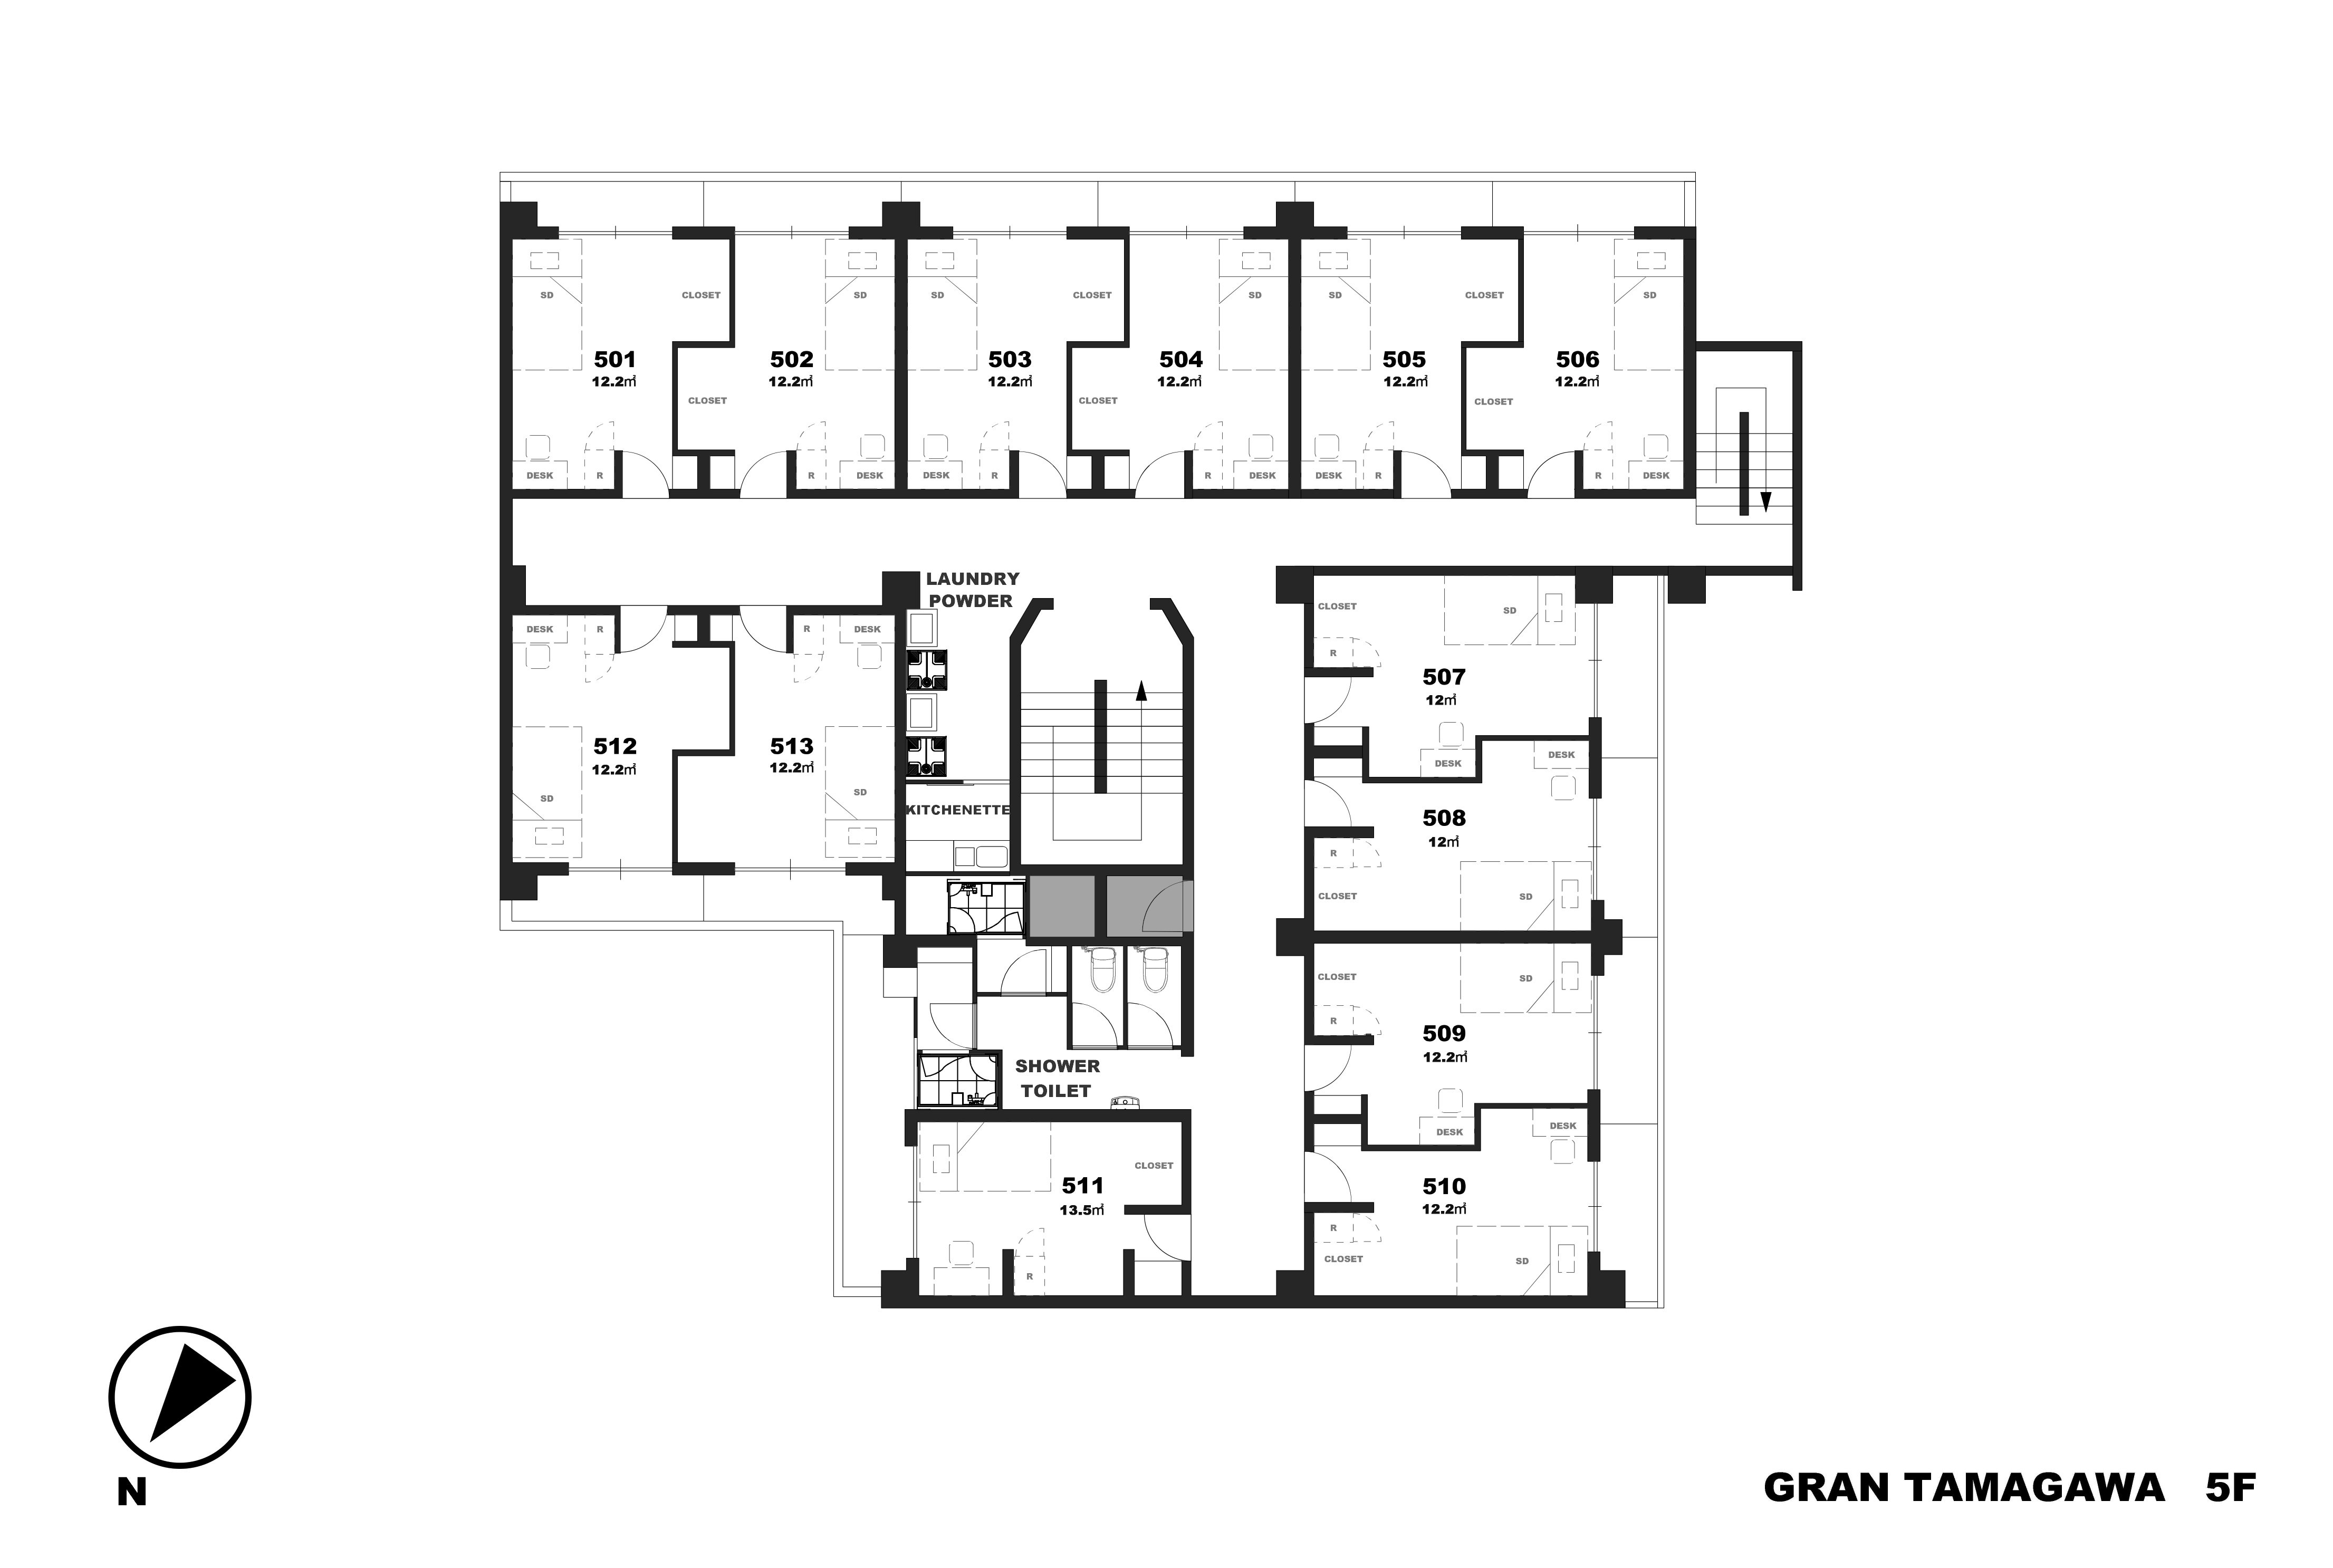 guesthouse sharehouse GRAN TAMAGAWA floorplan5